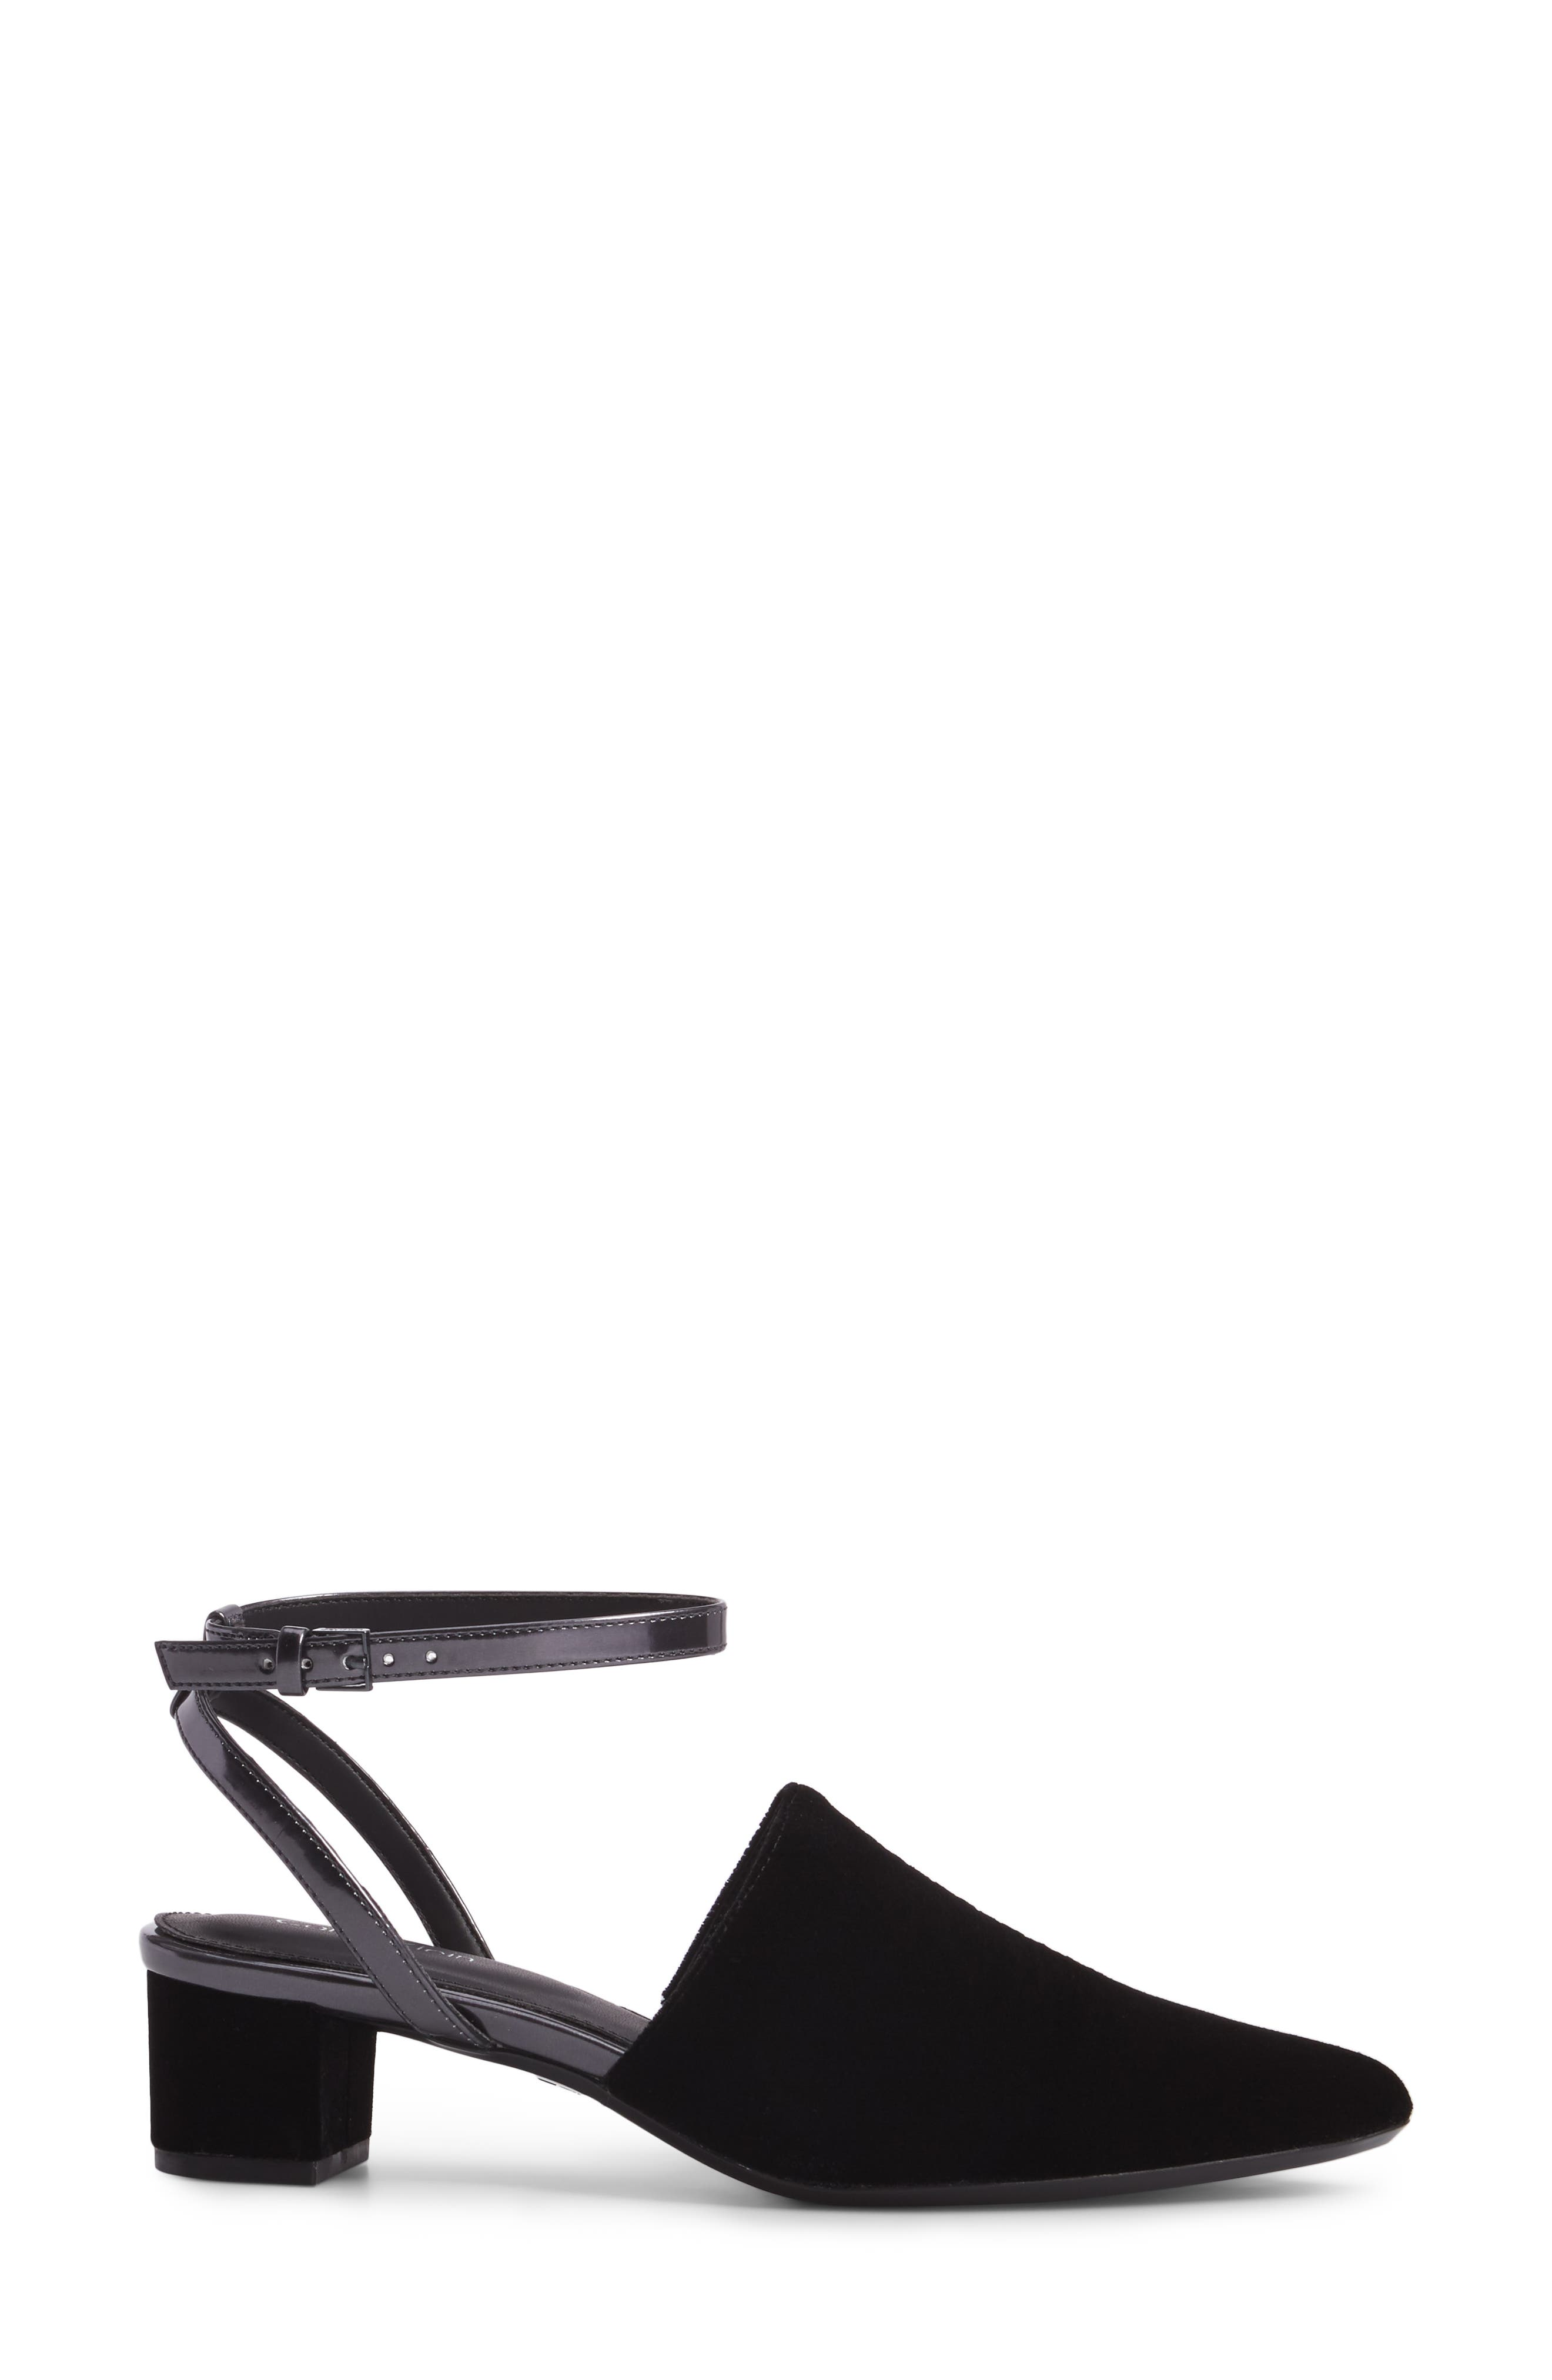 Ginetta Ankle Strap Pump,                             Alternate thumbnail 3, color,                             001